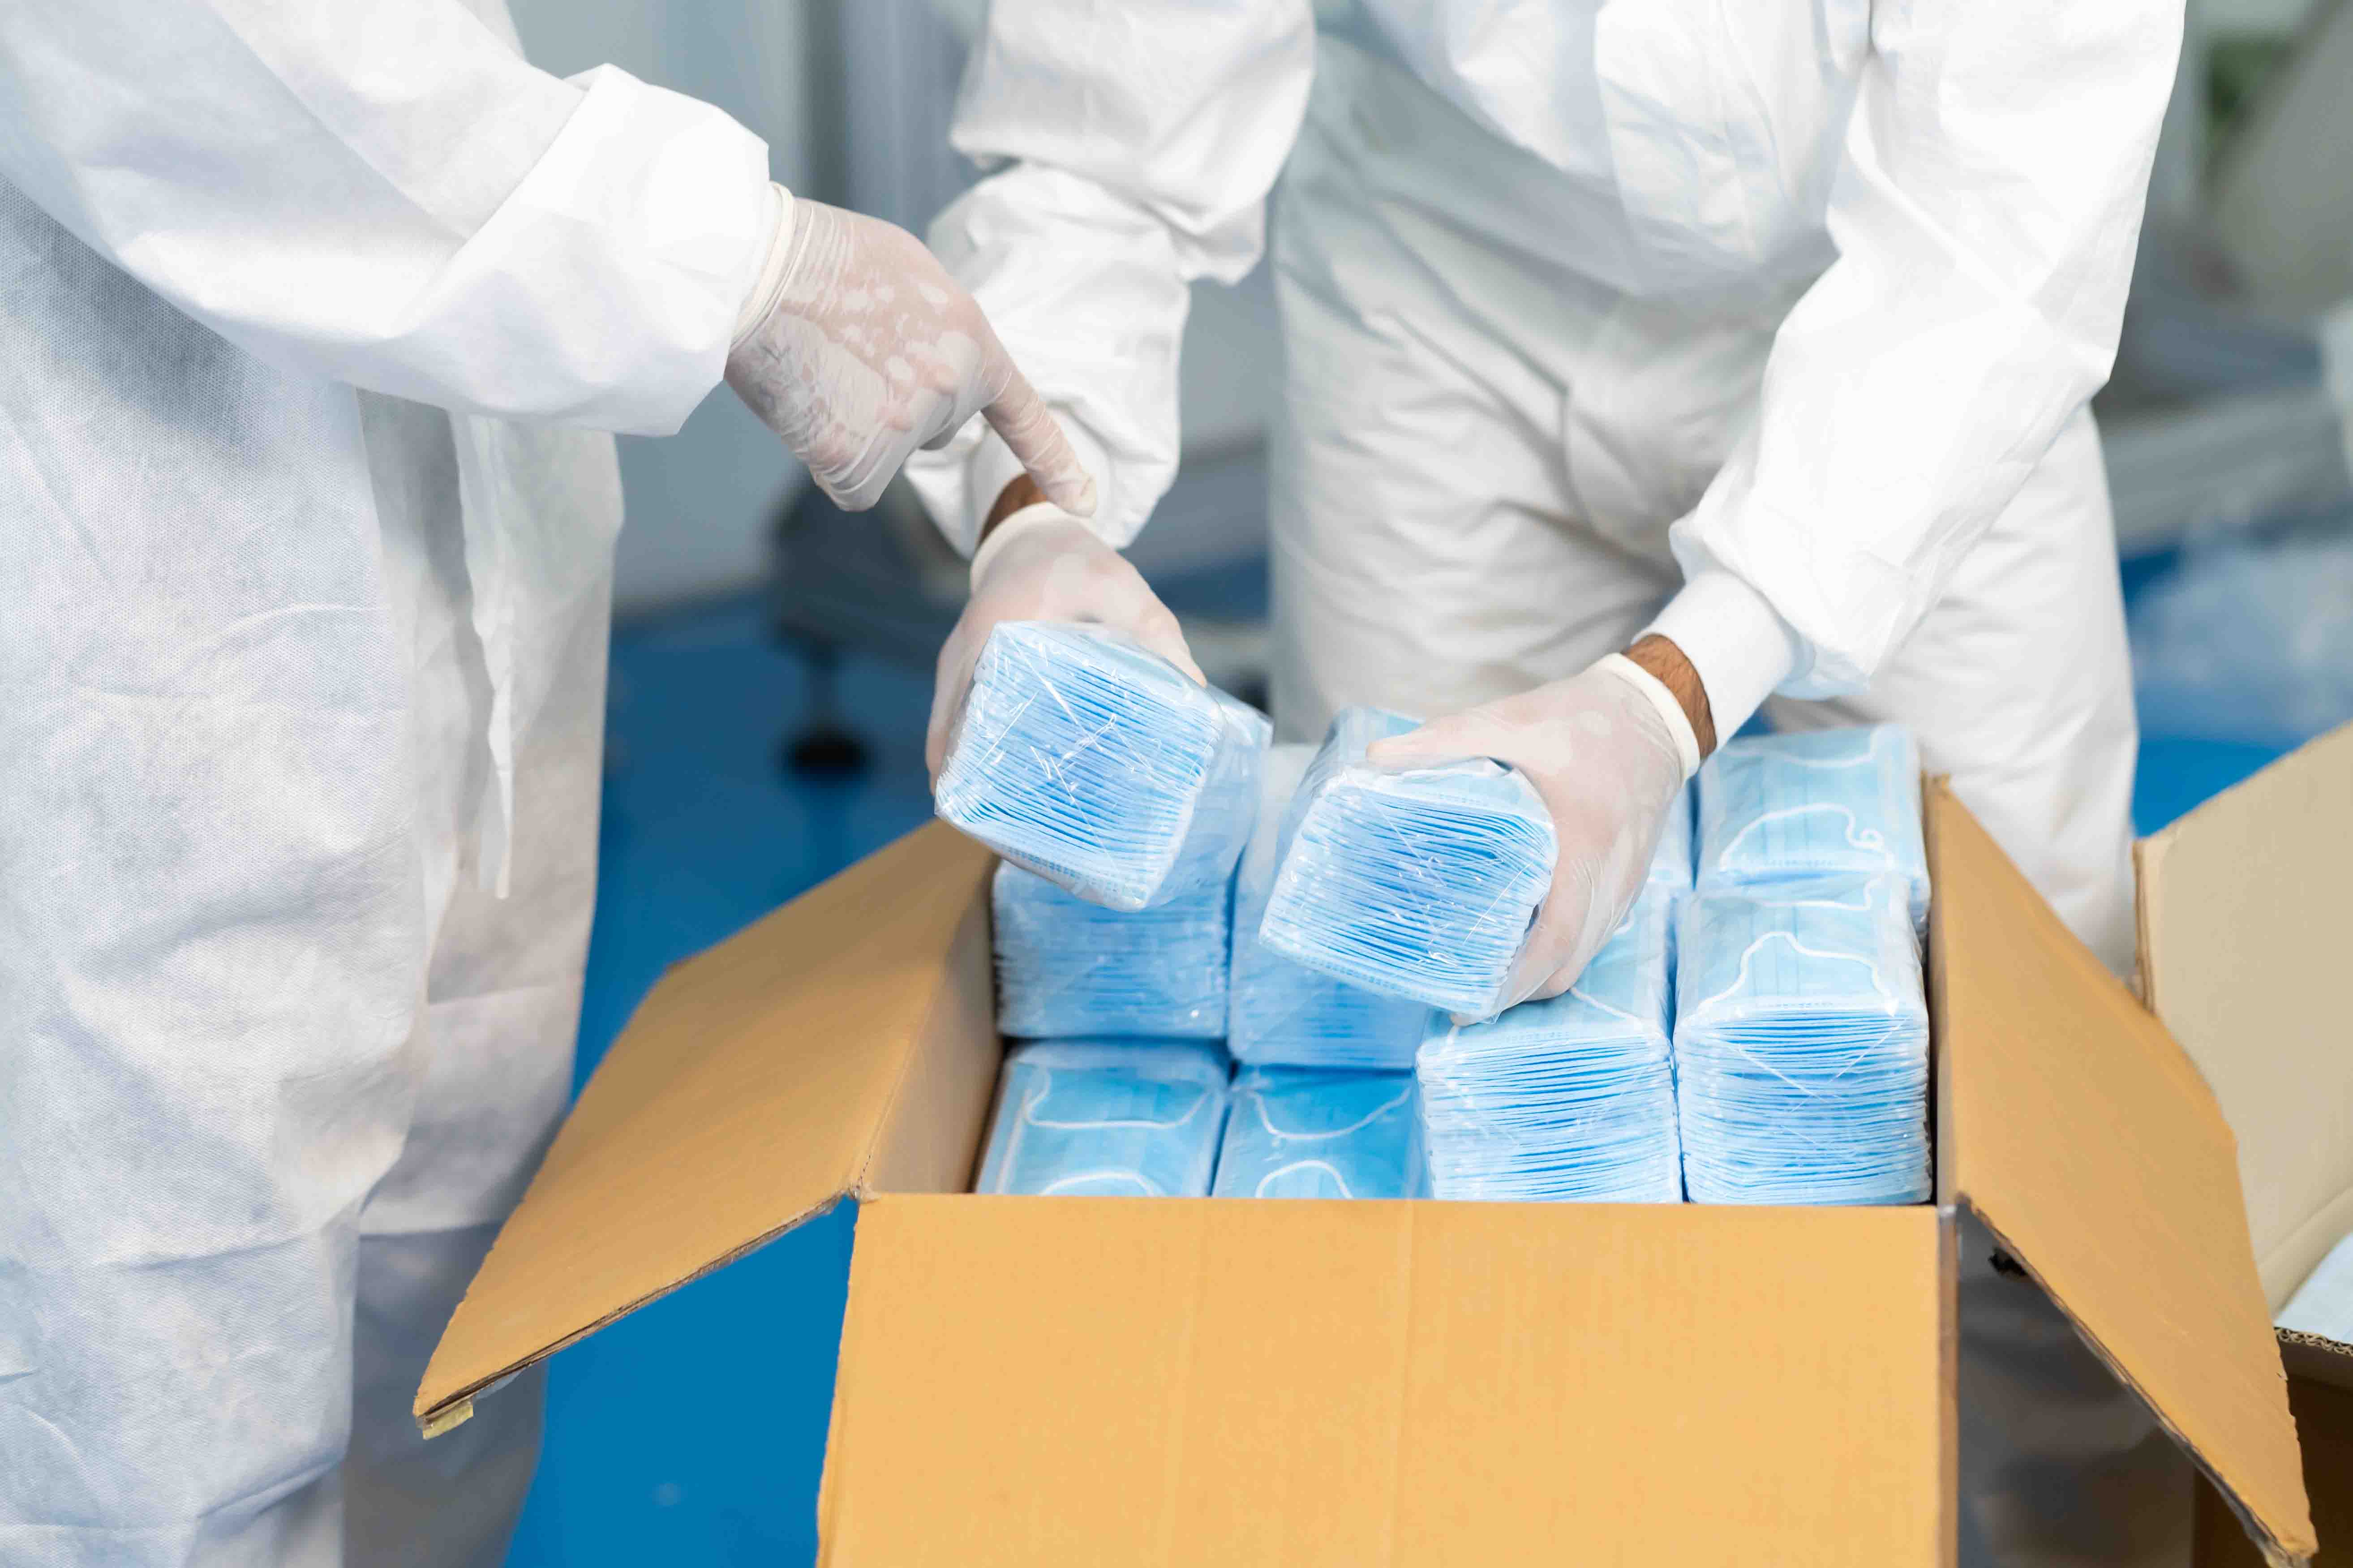 Workers are packing masks in boxes for delivery to customers.